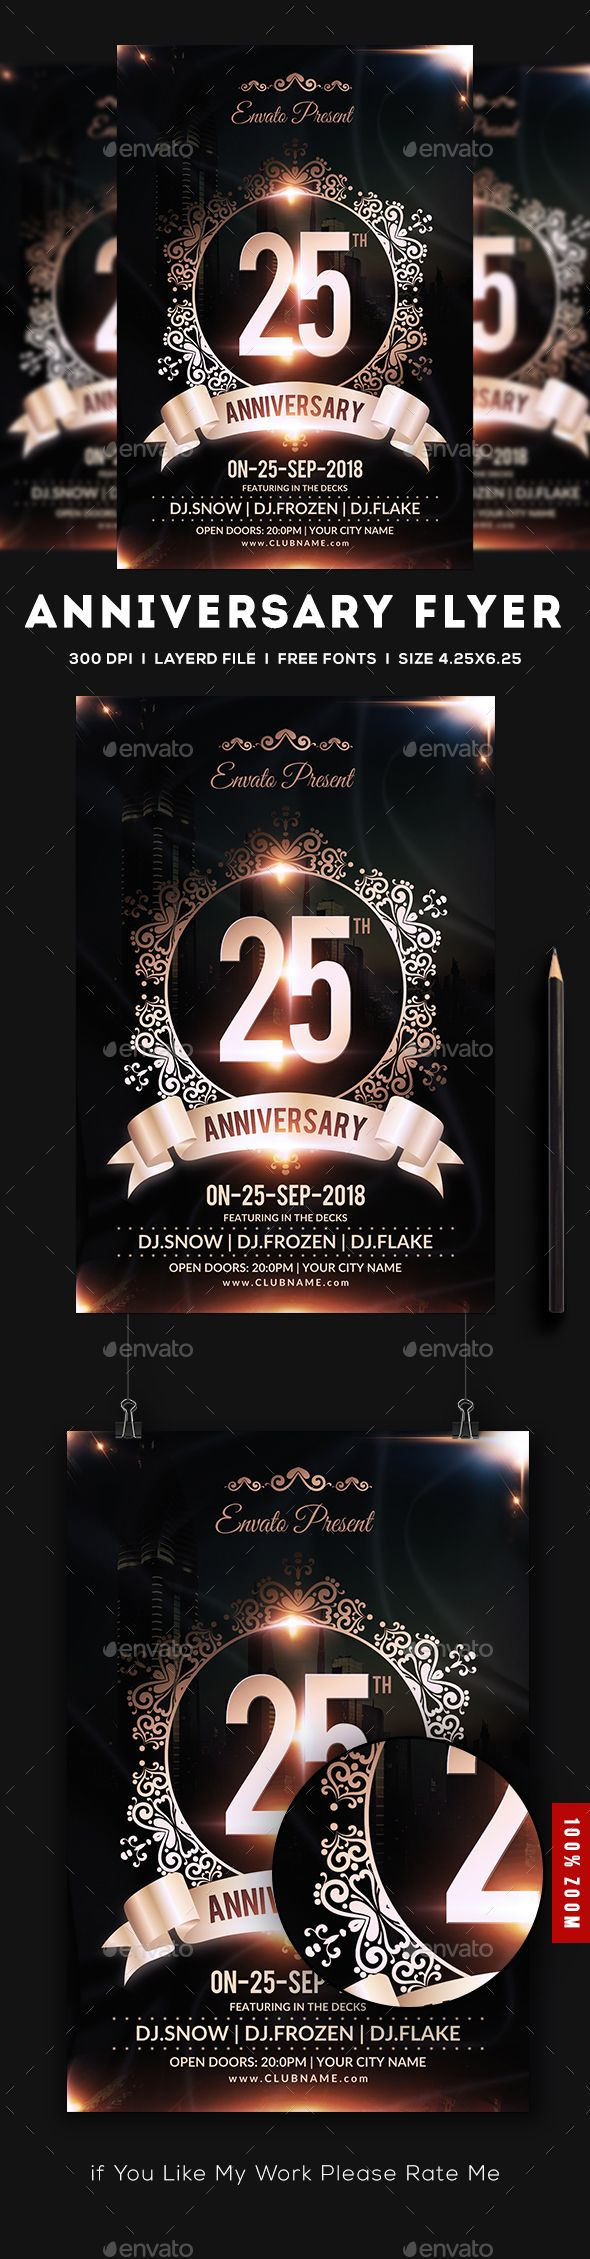 Anniversary Flyer | Pinterest | Flyer template, Anniversaries and ...